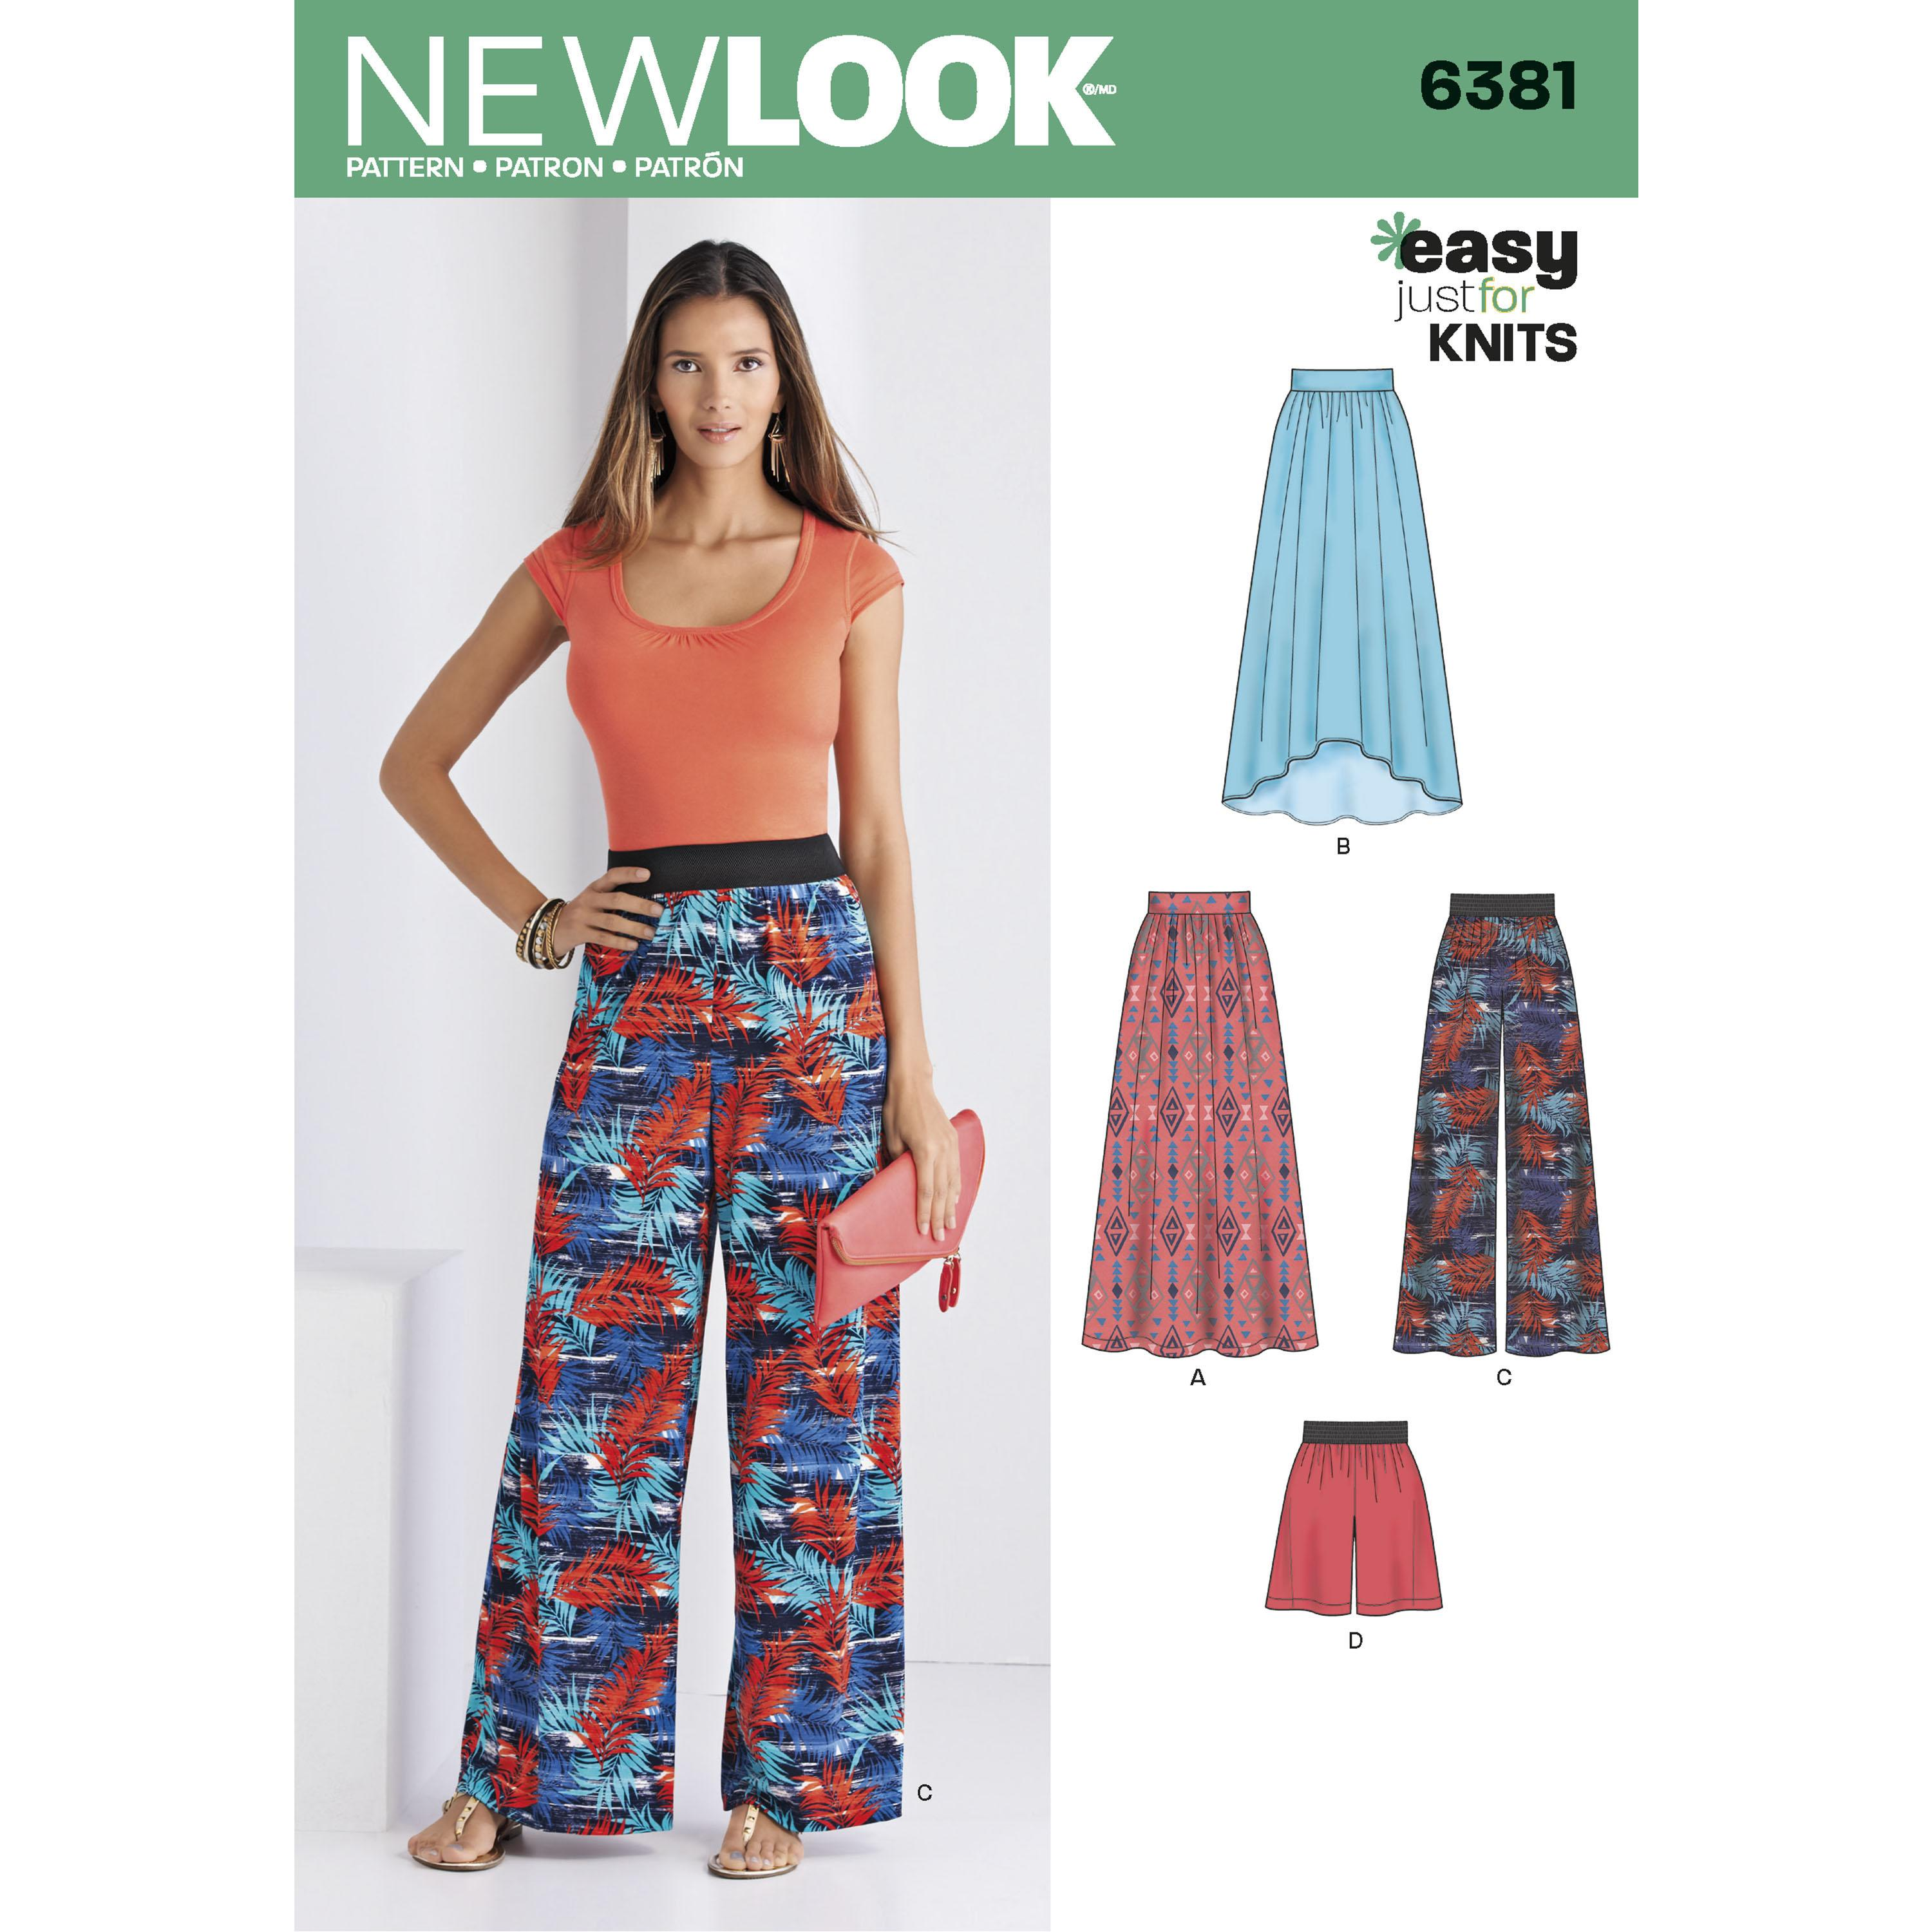 NewLook N6381 Misses' Knit Skirts and Pants or Shorts